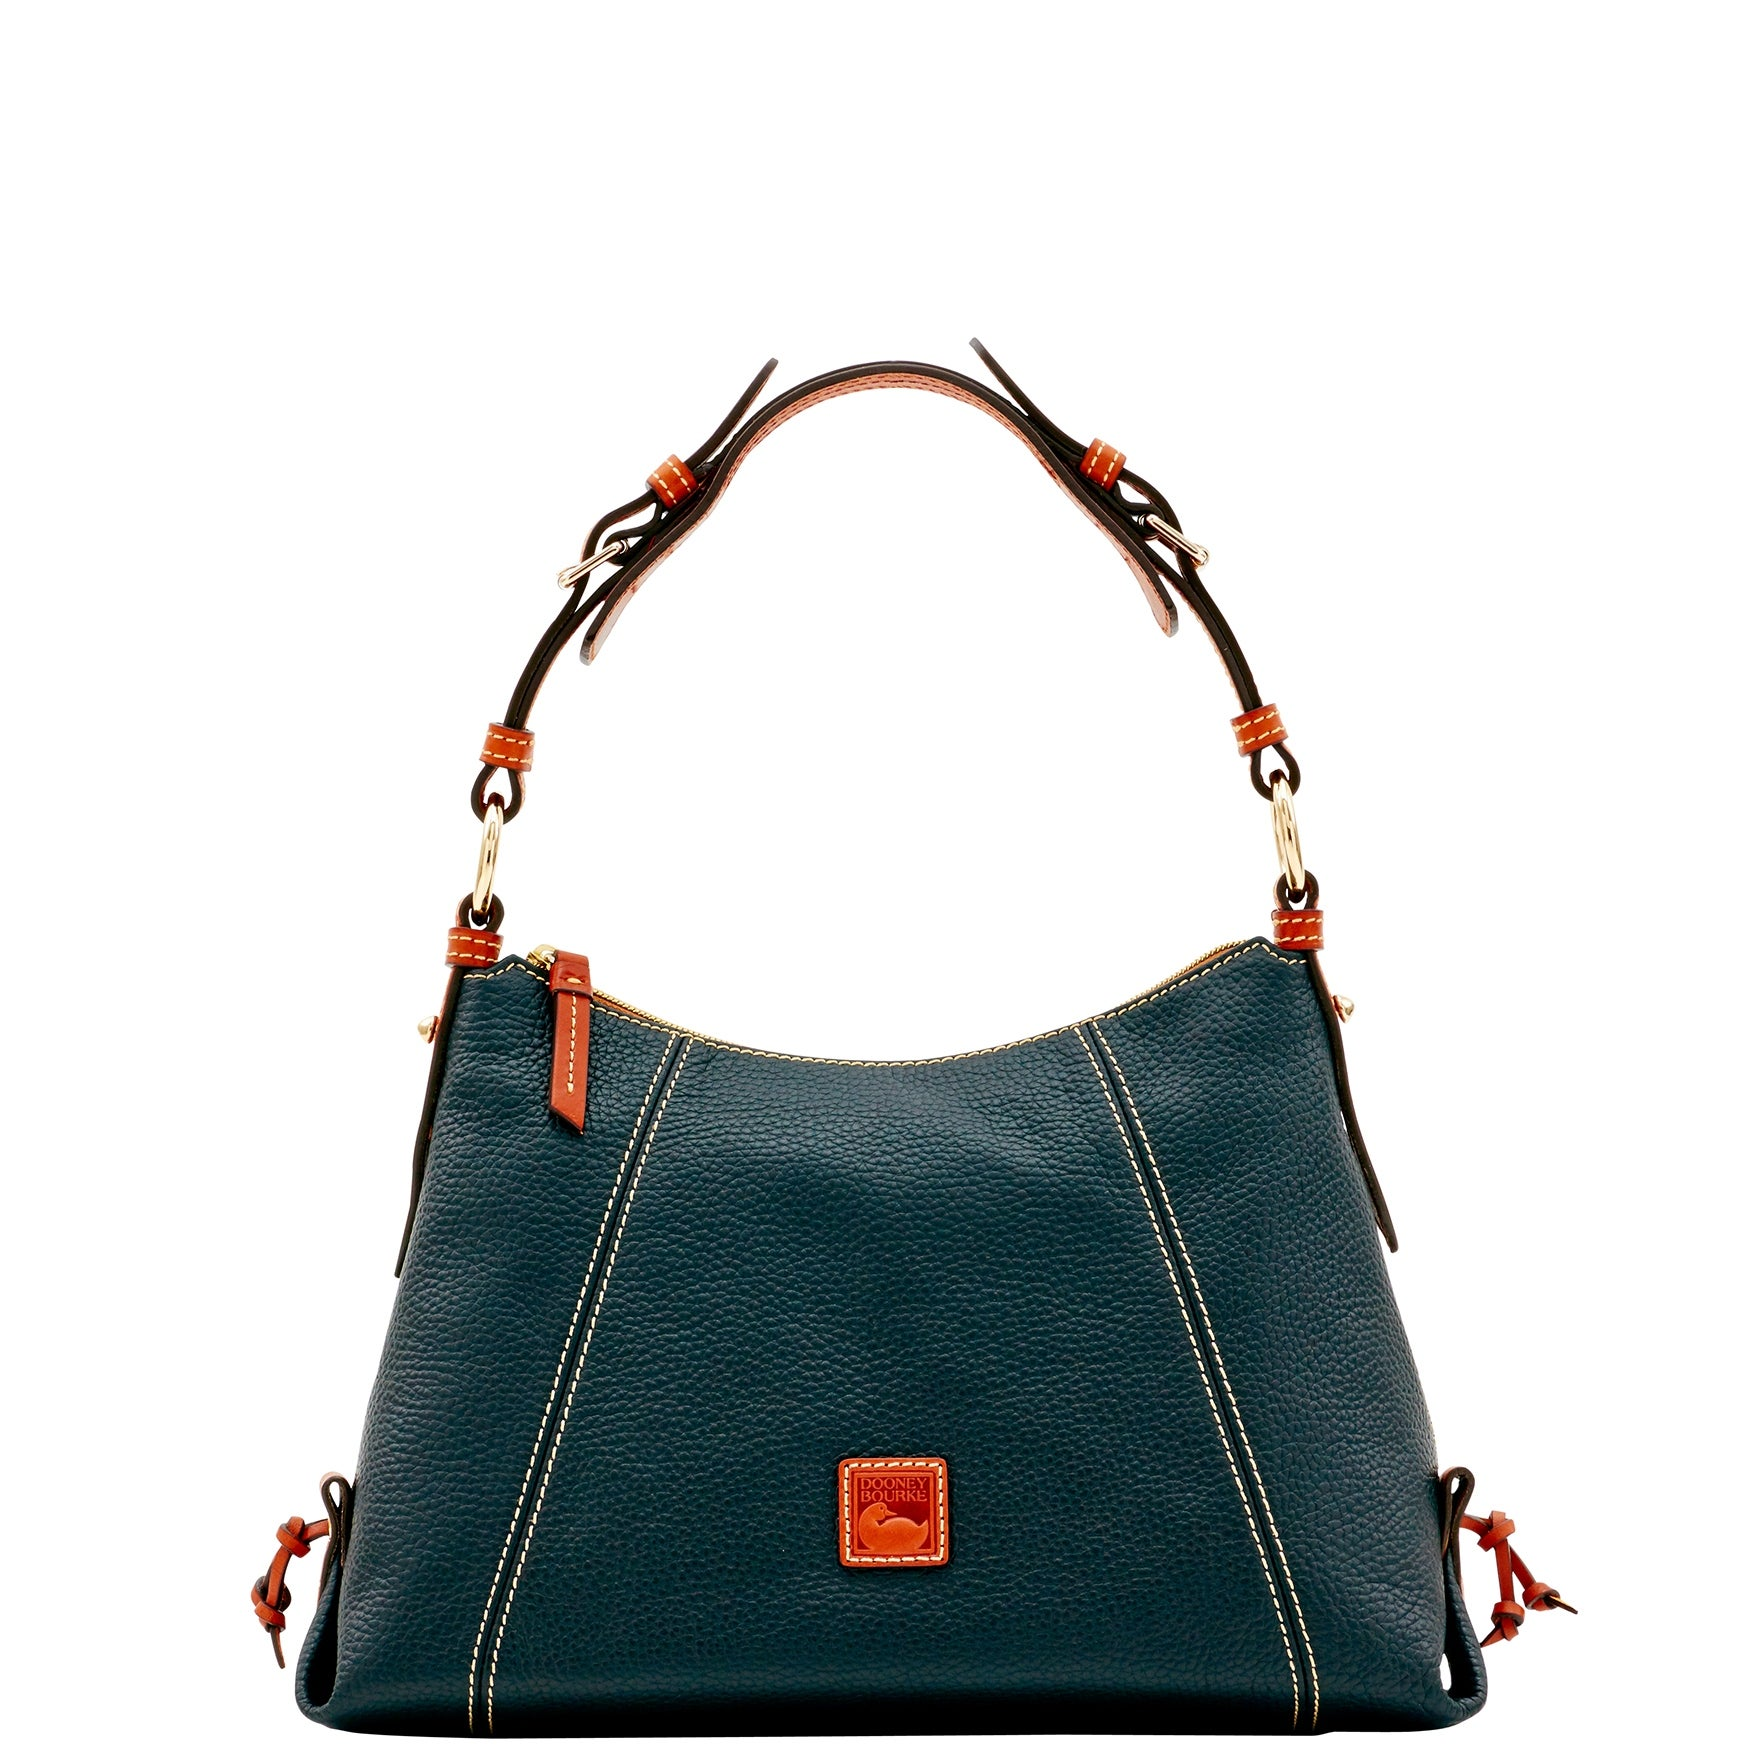 2668e0bae455 Dooney   Bourke Pebble Grain Small East West Slouch Shoulder Bag  (Introduced by Dooney   Bourke at  248 in Nov 2015)